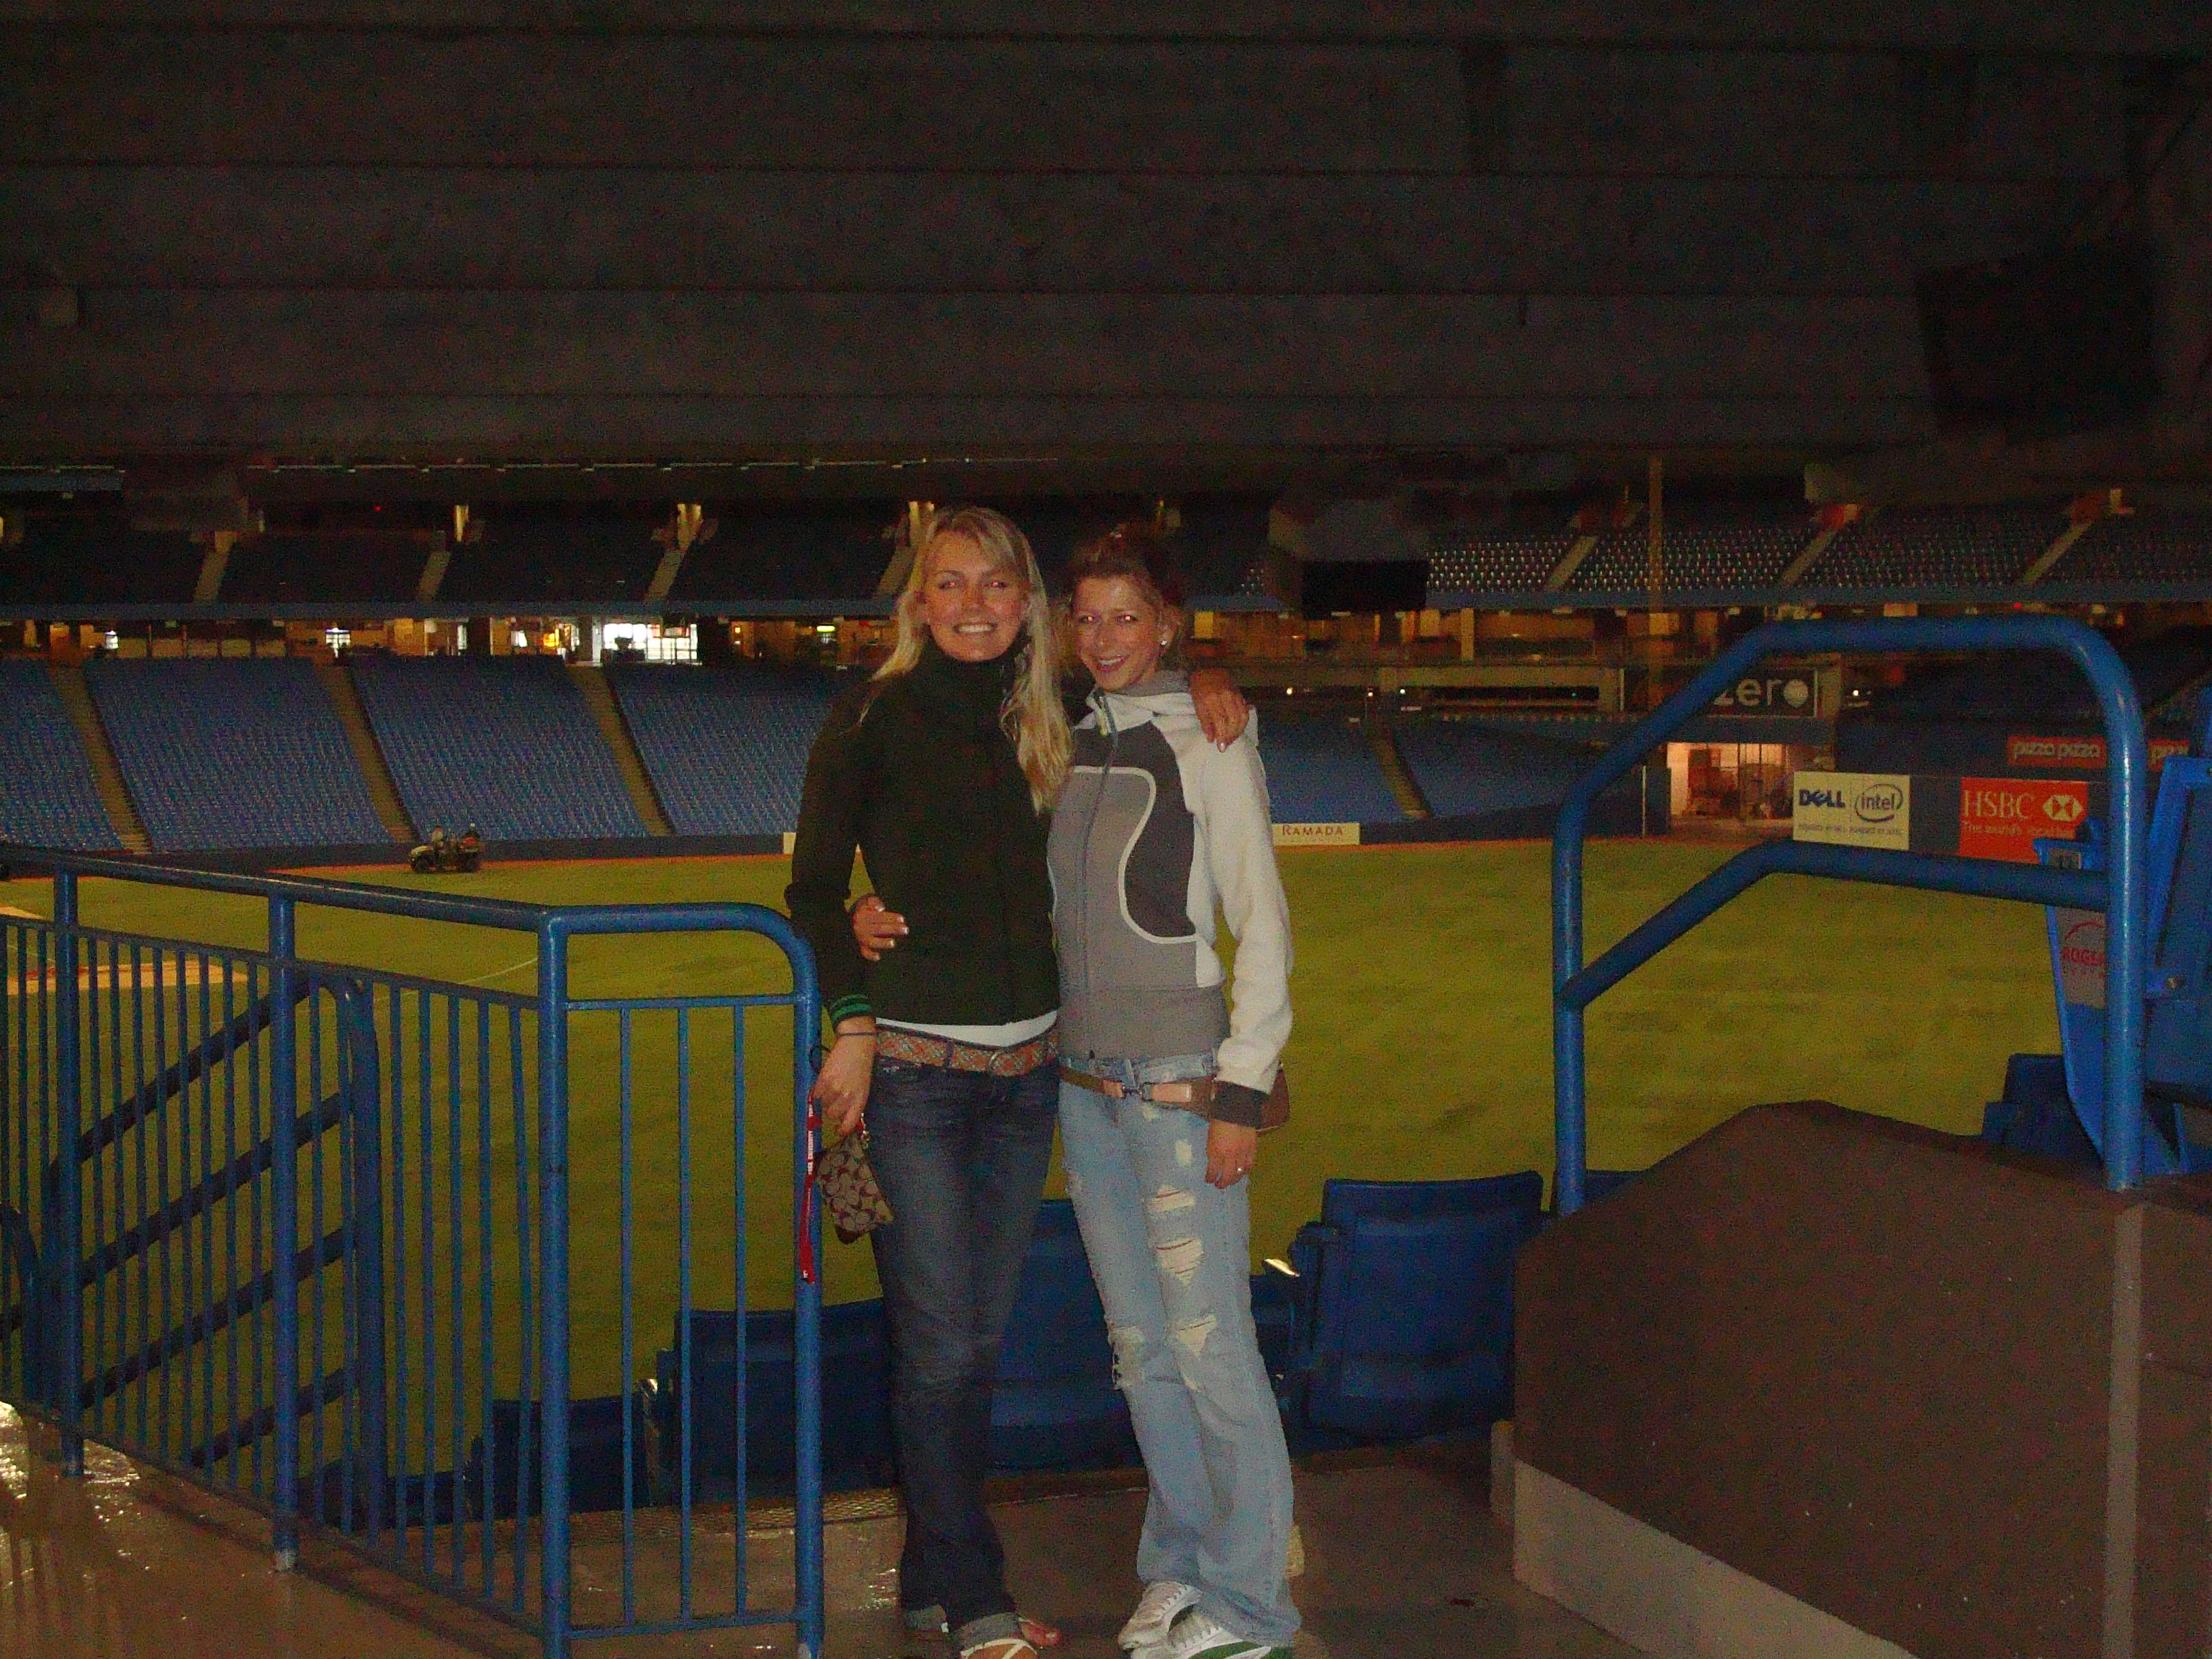 At the Rogers Centre